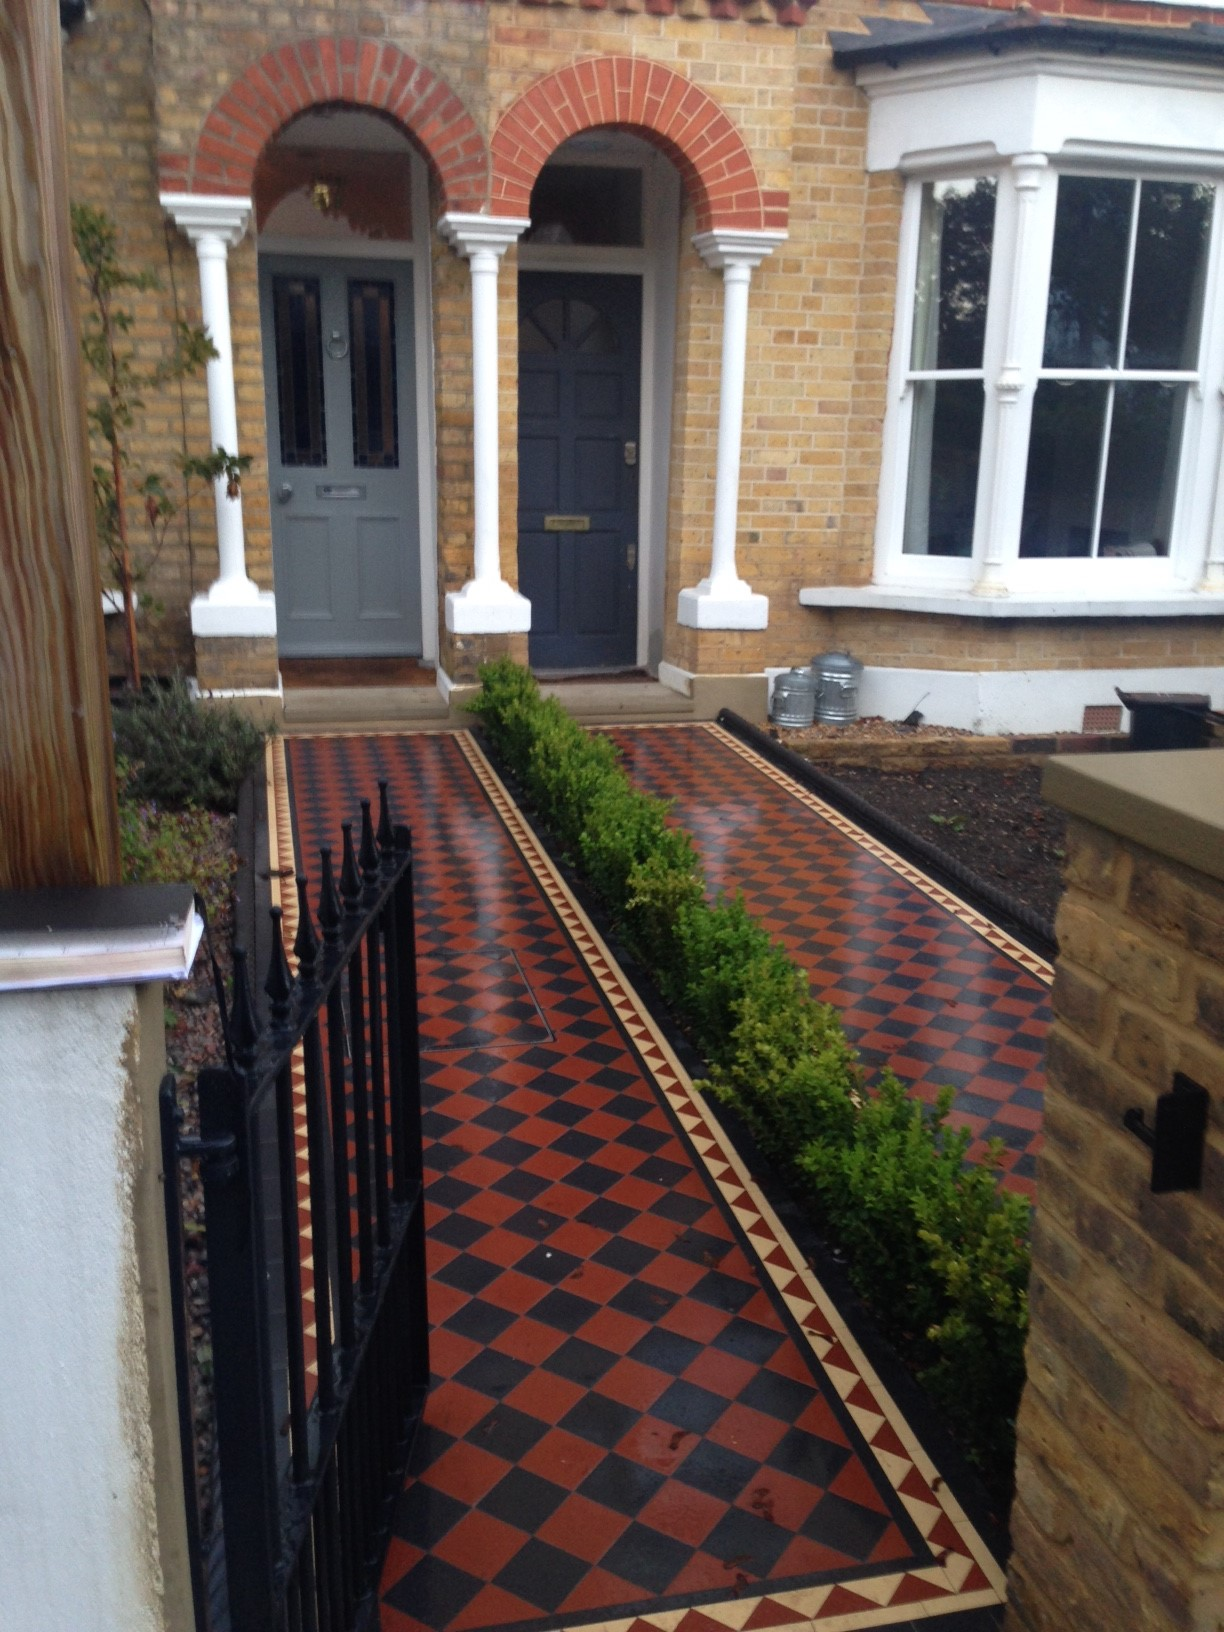 Brixton Herne Hill Victorian Mosaic Tile Path black and red tile with Yorkstone pier cap entrance stone and imperial yellow brick london stock wall (5)